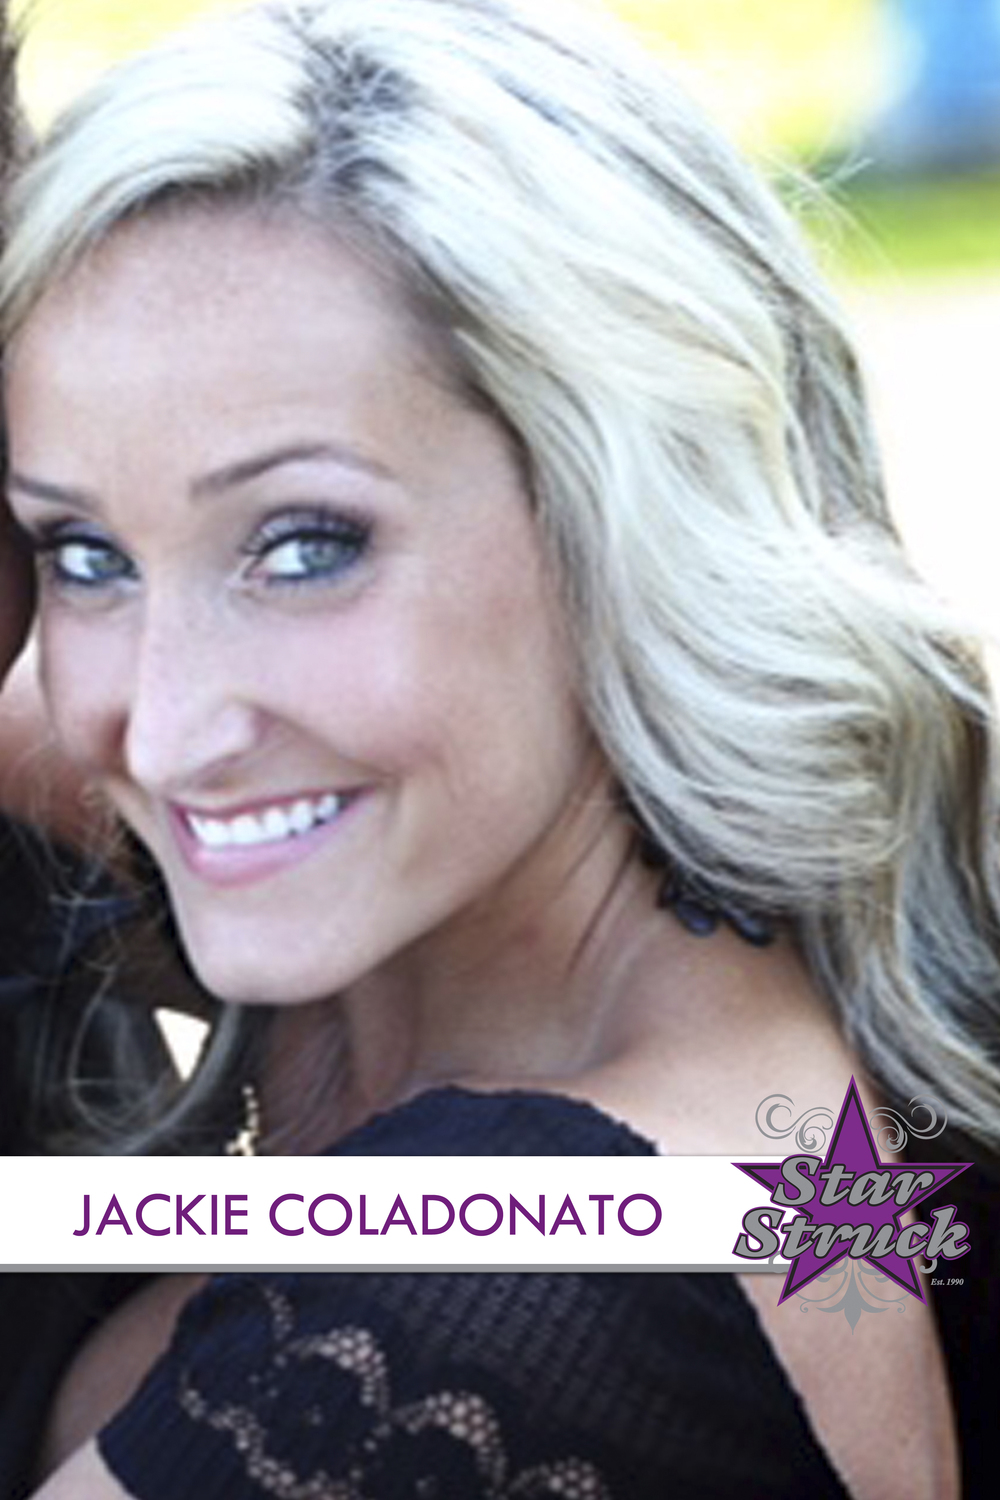 "JACKIE COLADONATO    Jackie Coladonato began her dance training when she was nine years old here at Star Struck Dance Studio. At the age of 17, she traveled with the Starpower Power Pak to Branson Missouri and Las Vegas Nevada and even performed with MC Hammer.   Jackie   soon wanted to take her shot at dancing professionally and auditioned for an NBA dance team. In 2006, she was hired by the New Jersey Nets as a Nets Dancer. She danced with them for four amazing seasons making unforgettable memories and forever friends. While on the Nets, Jackie learned from and trained under many notable names in the dance industry such as Luam, Jermaine Brown and Adar Wellington.   Jackie also had the opportunity to travel with the Nets to Mexico City Mexico and London England where she danced, made appearances and promoted the NBA.    Although she has retired in her professional career, Jackie has since married in 2012 and had a beautiful little girl in 2013.   Jackie enjoys teaching and sharing the art of dance with all of her students here at star struck.   ""It takes an athlete to dance, but an artist to be a dancer"""